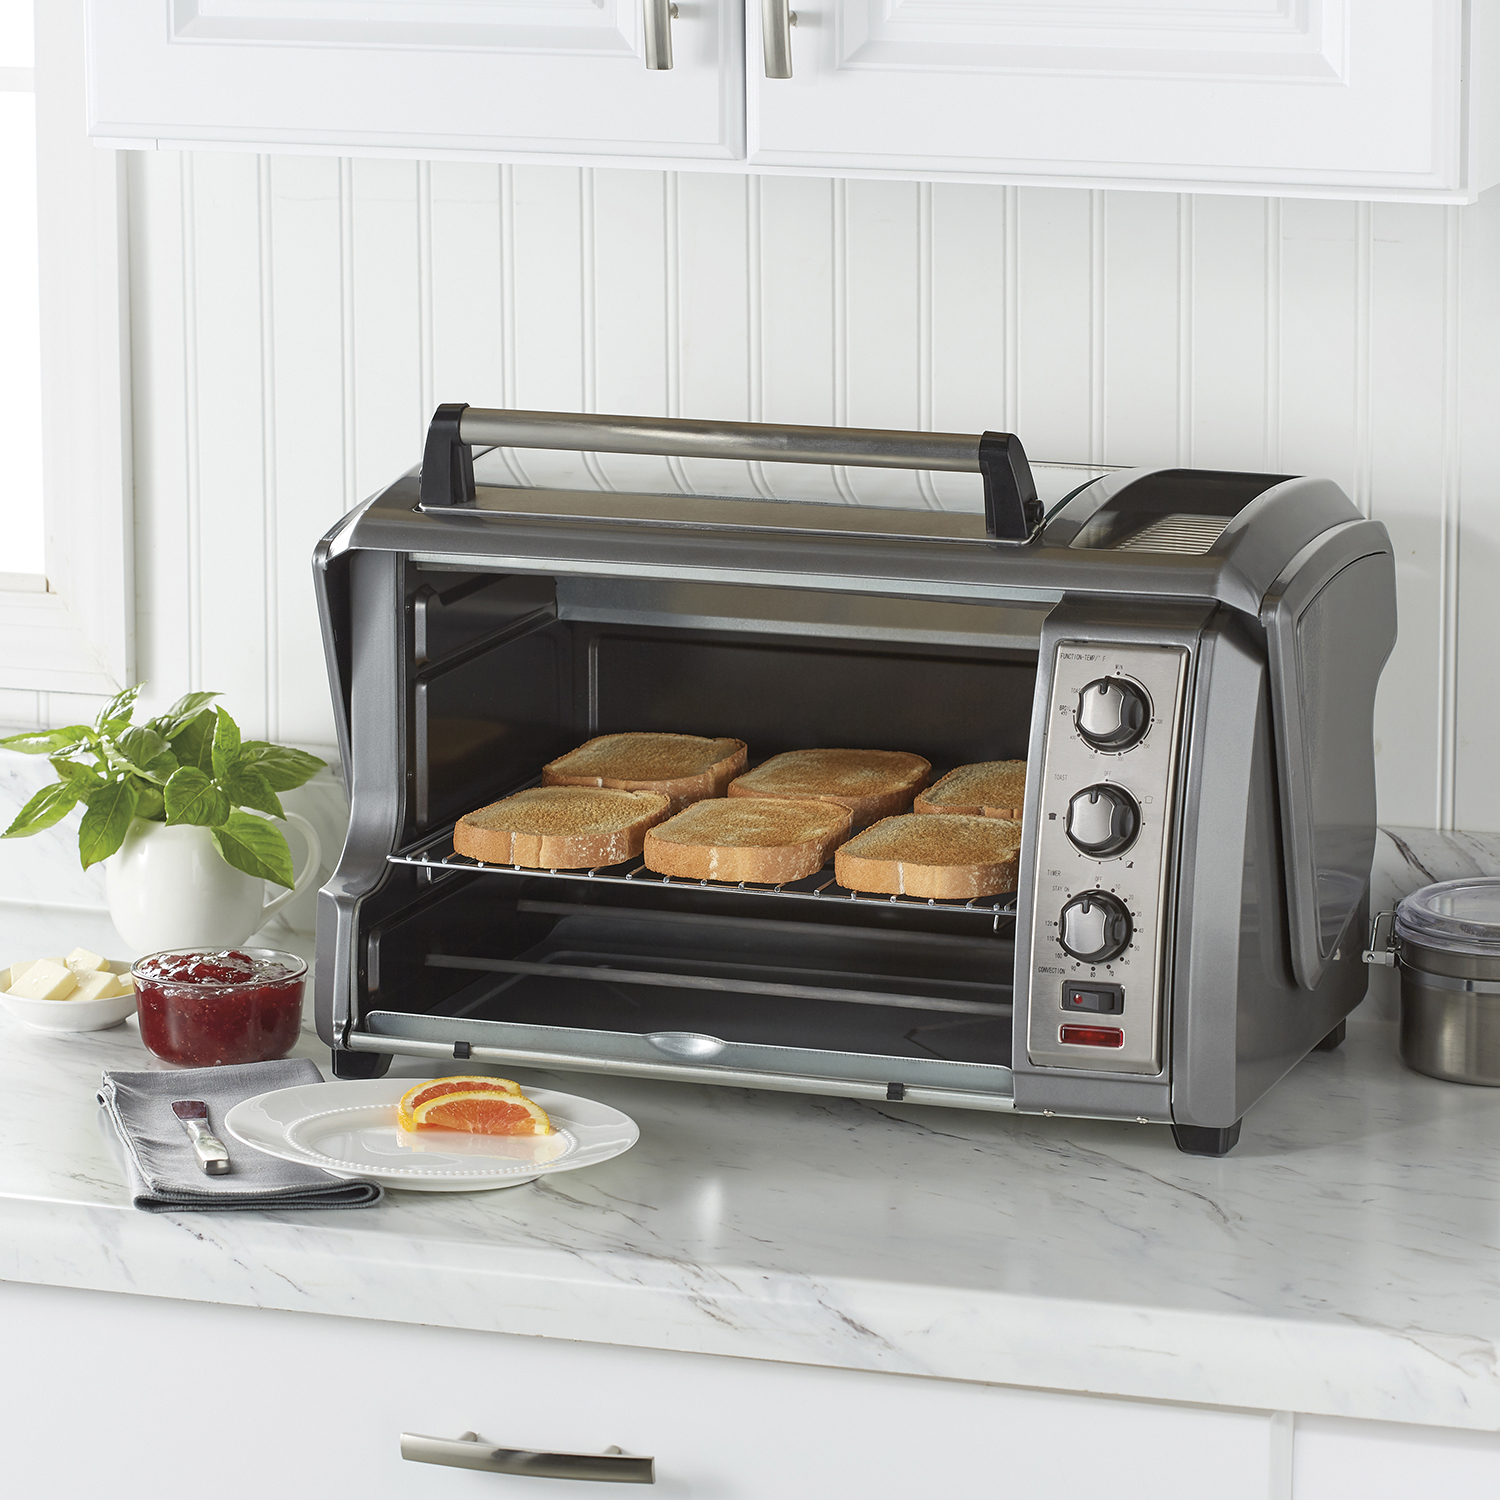 Enter to Win a 6 Slice Easy Reach®  Toaster Oven!